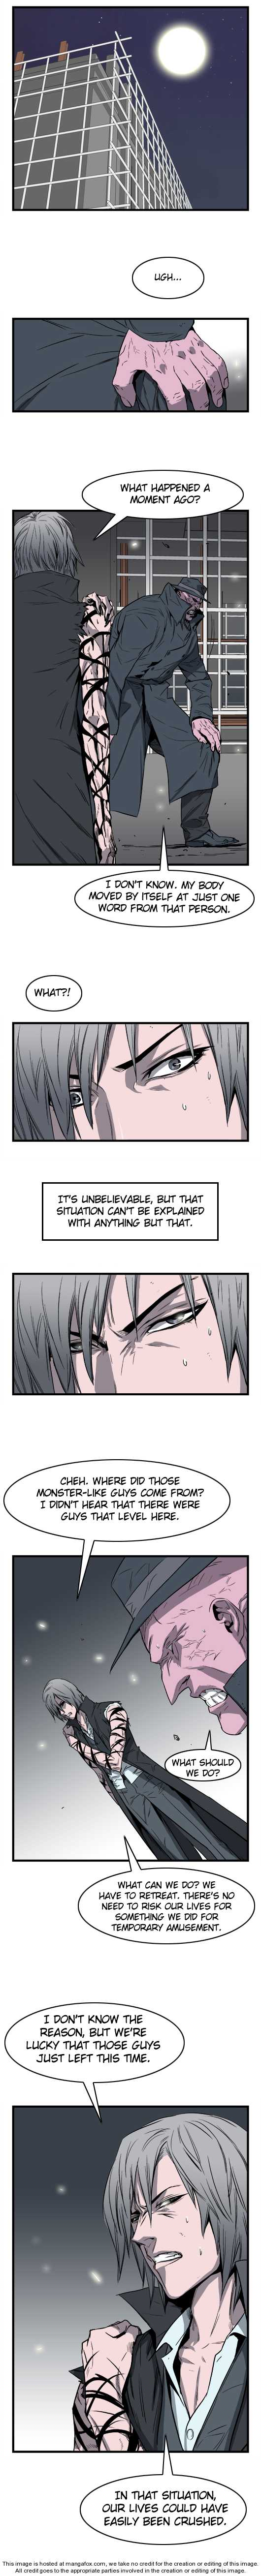 Noblesse 34 Page 3